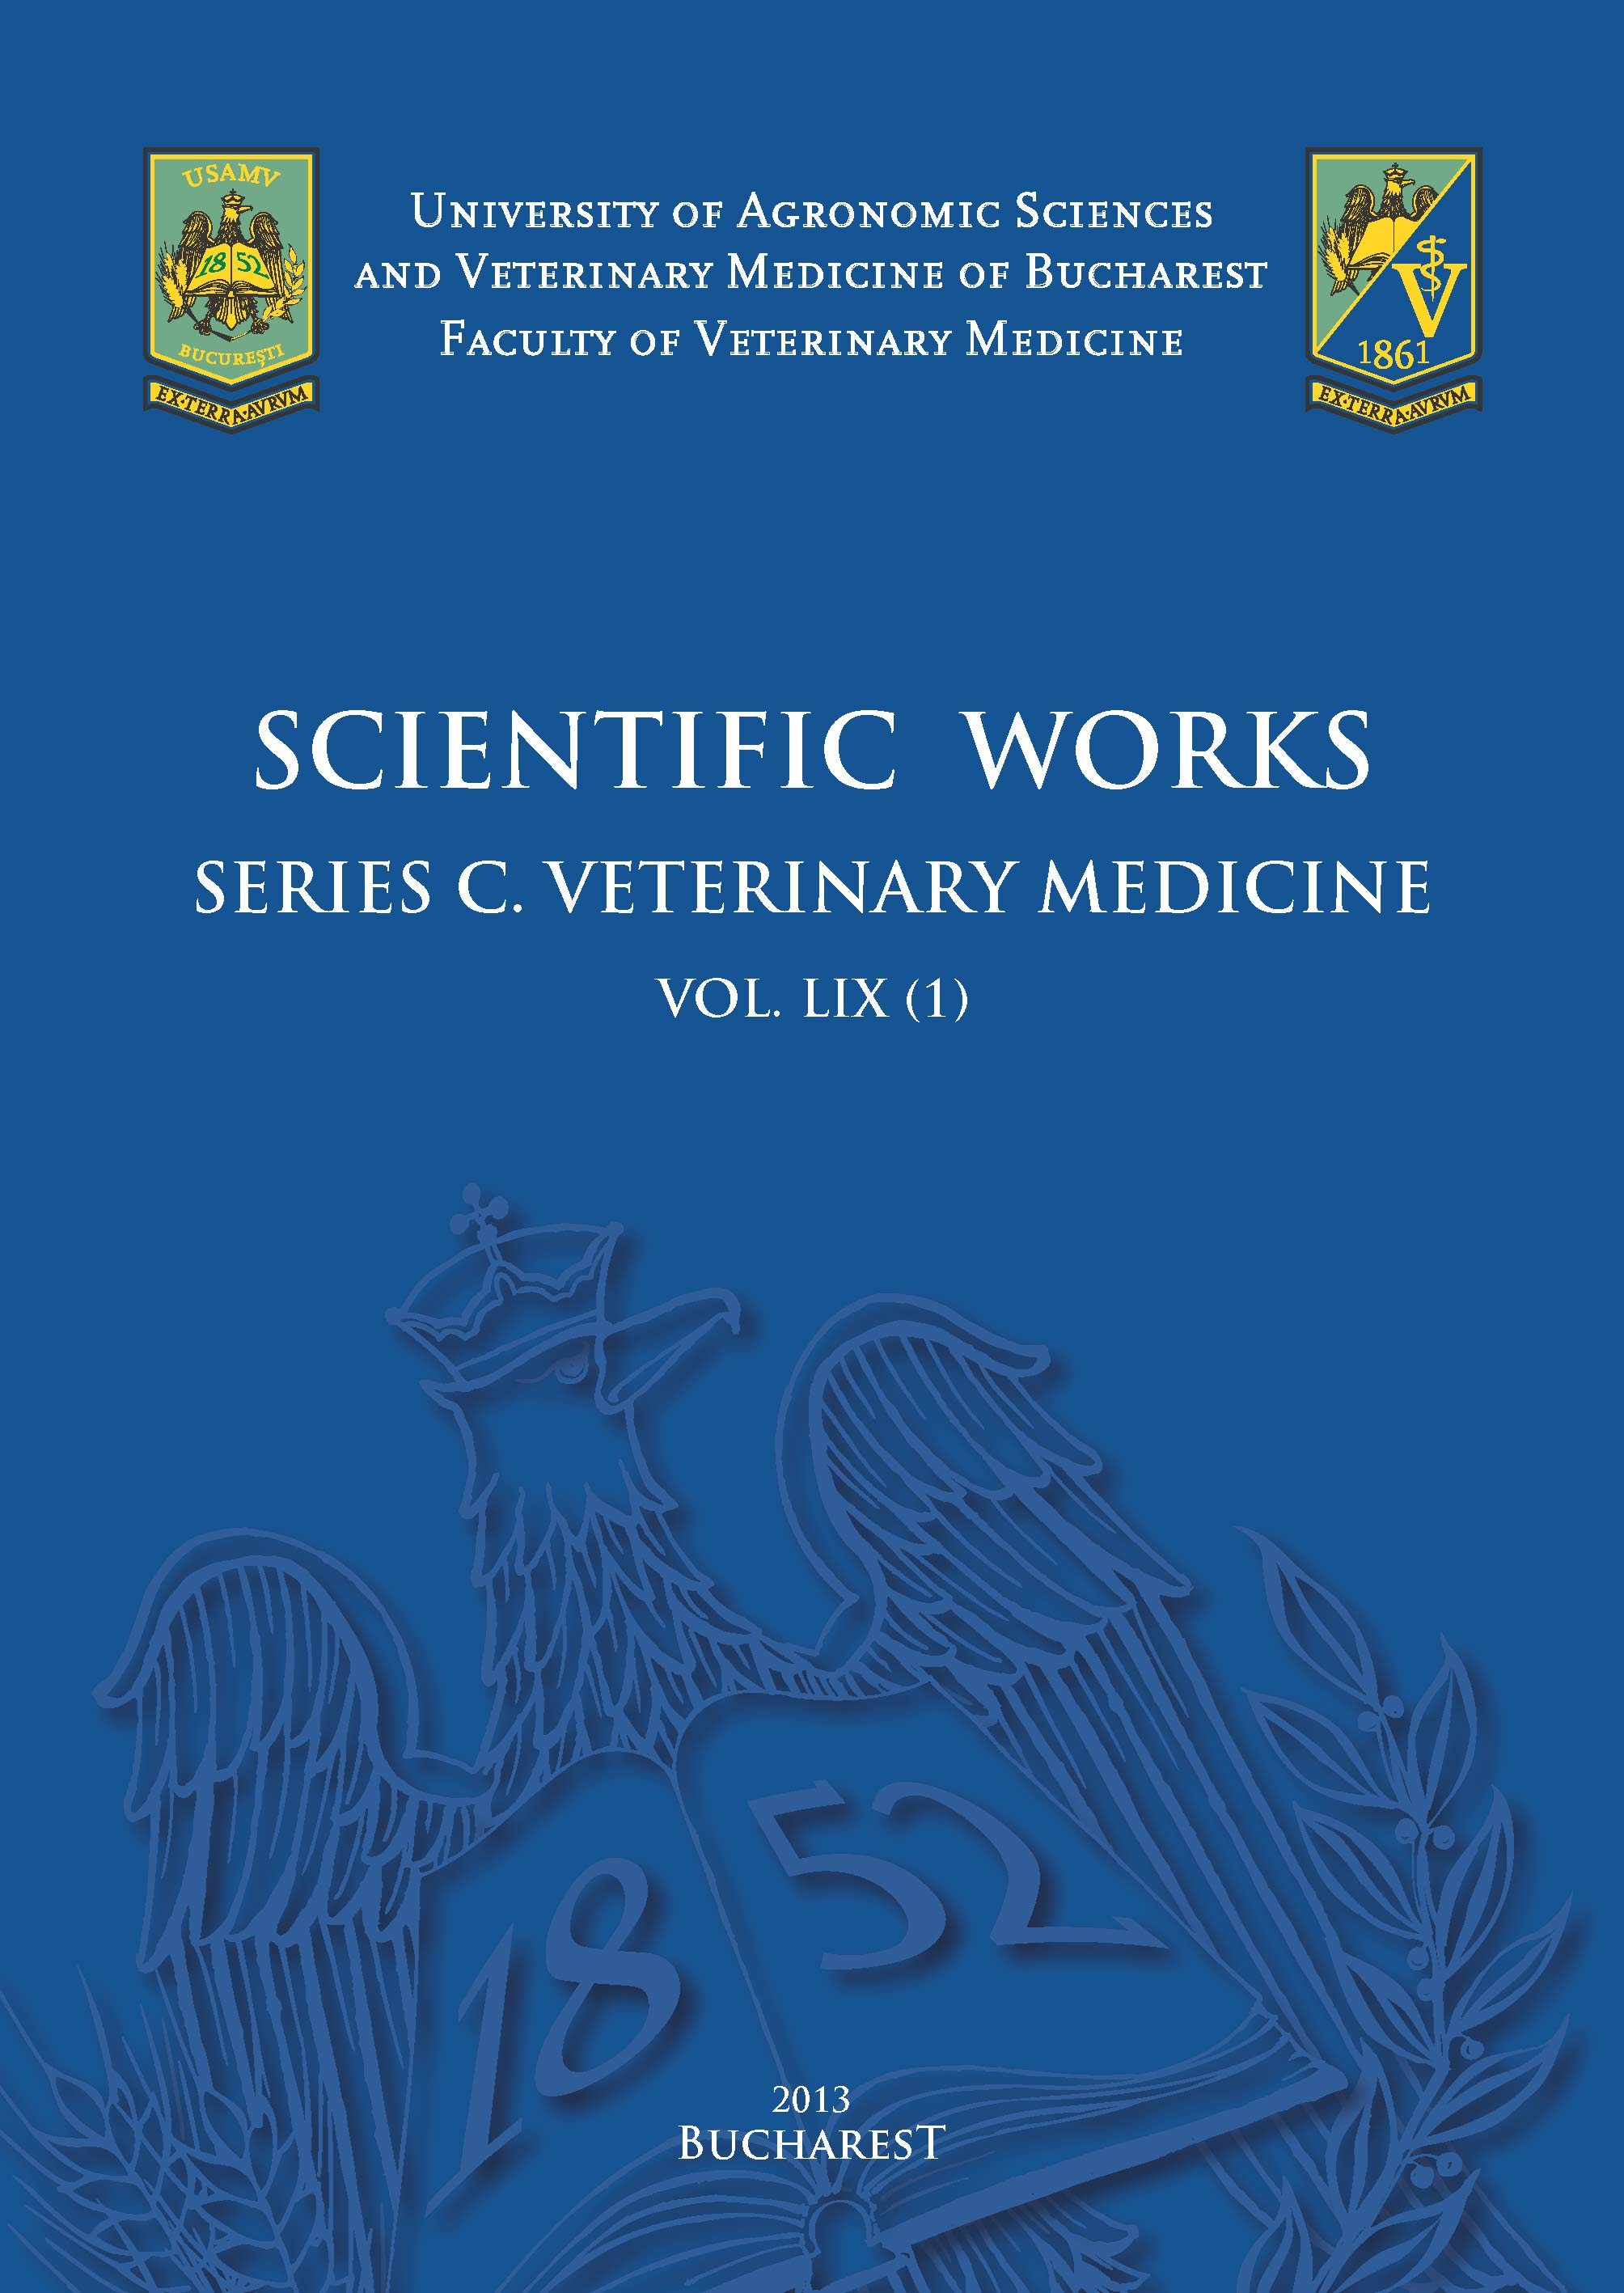 Scientific Works Series C. Veterinary Medicine